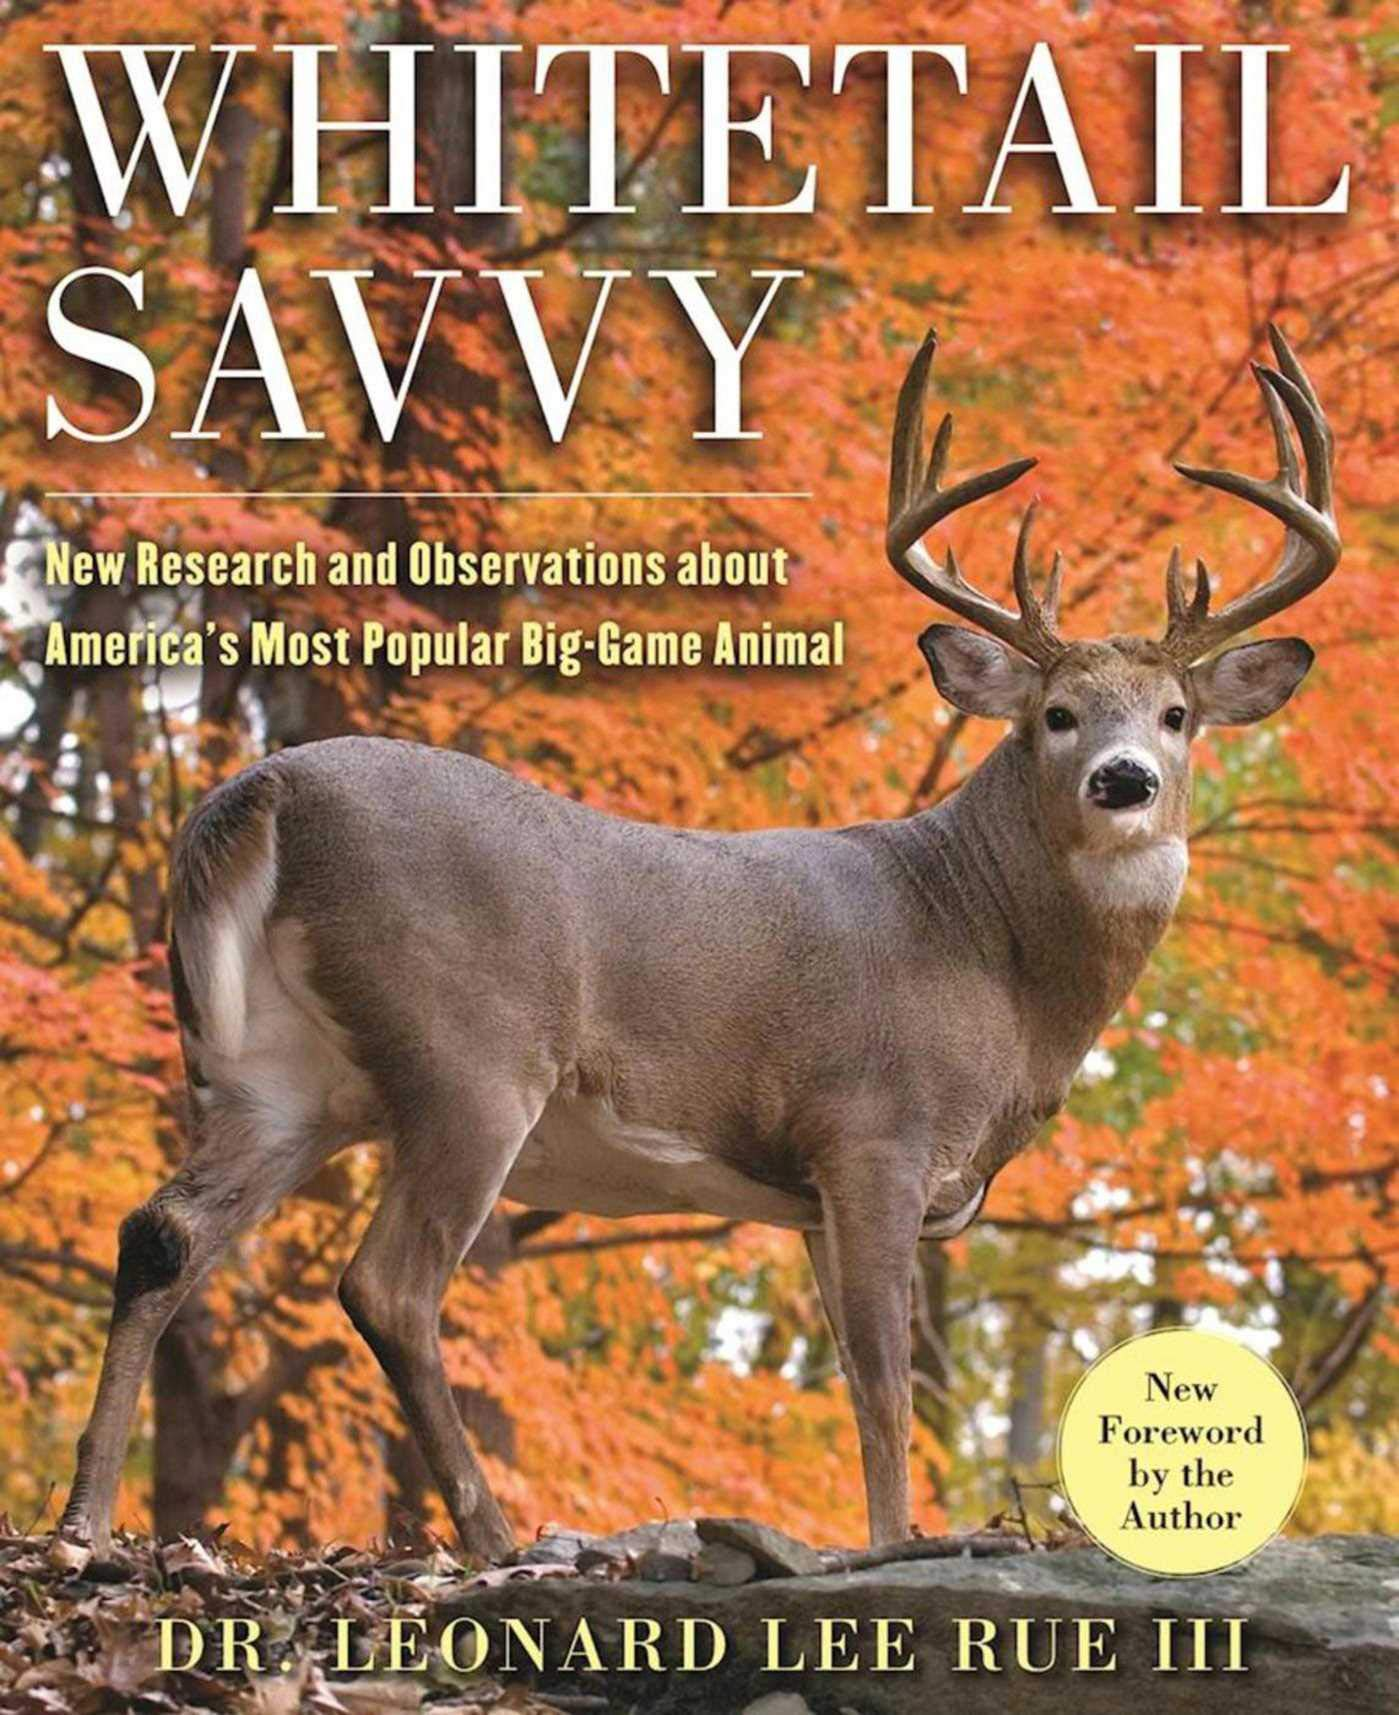 whitetail savvy new research and observations about the deerwhitetail savvy new research and observations about the deer, america\u0027s most popular big game animal dr leonard lee rue iii, charles j alsheimer